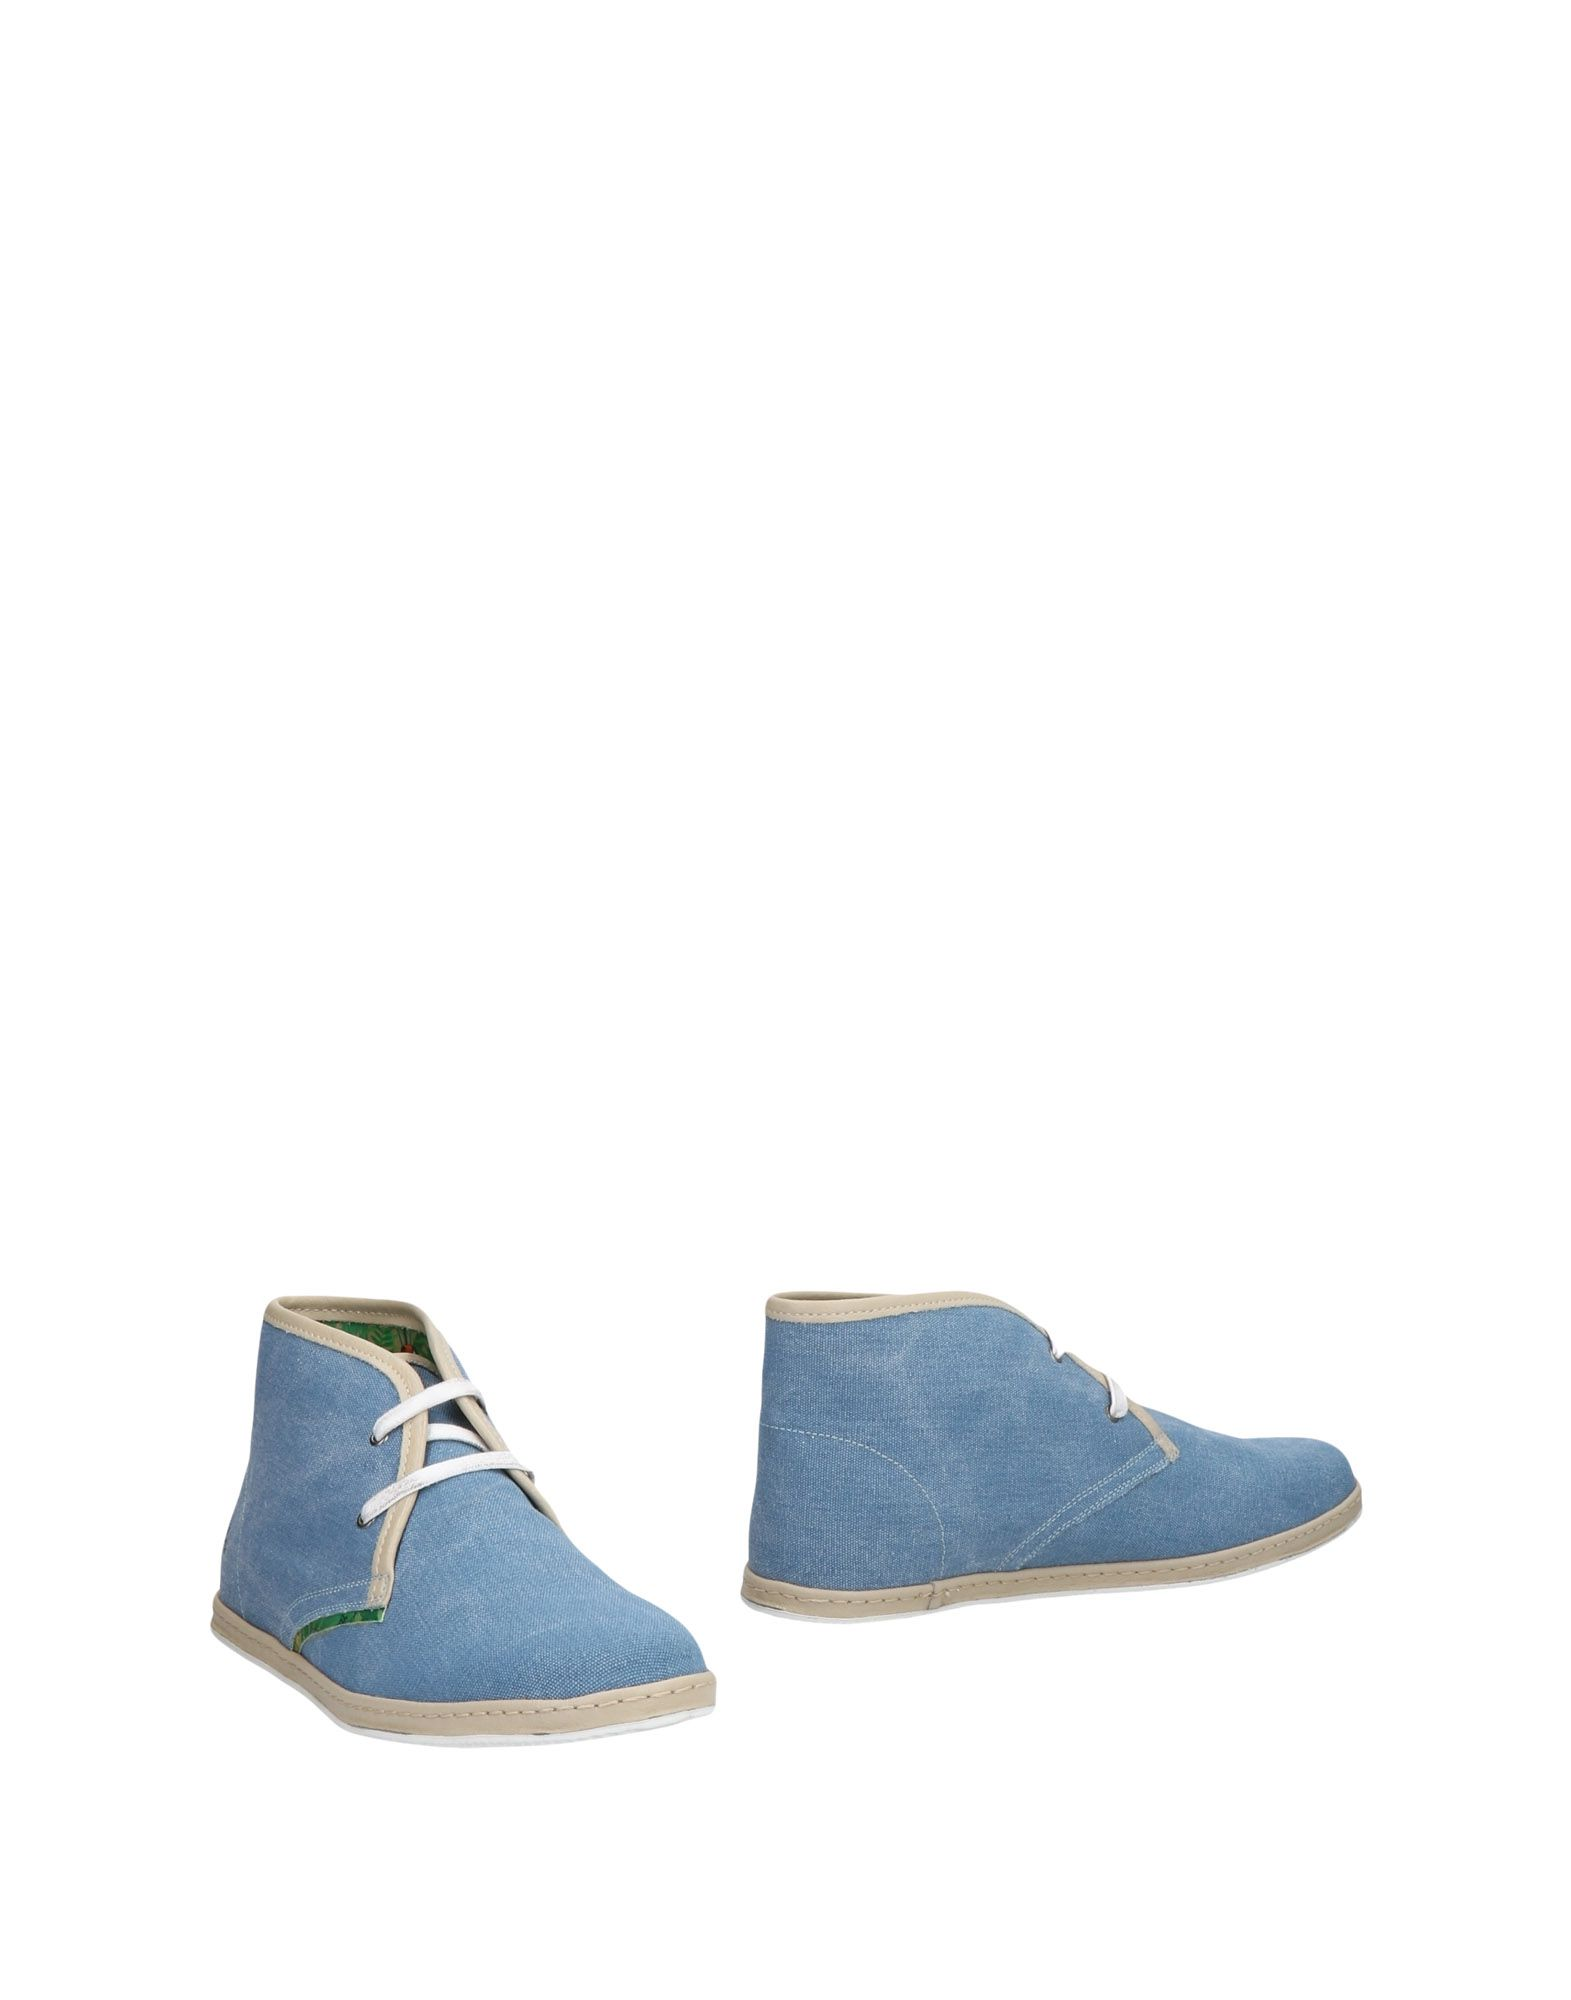 LE CROWN Boots in Pastel Blue